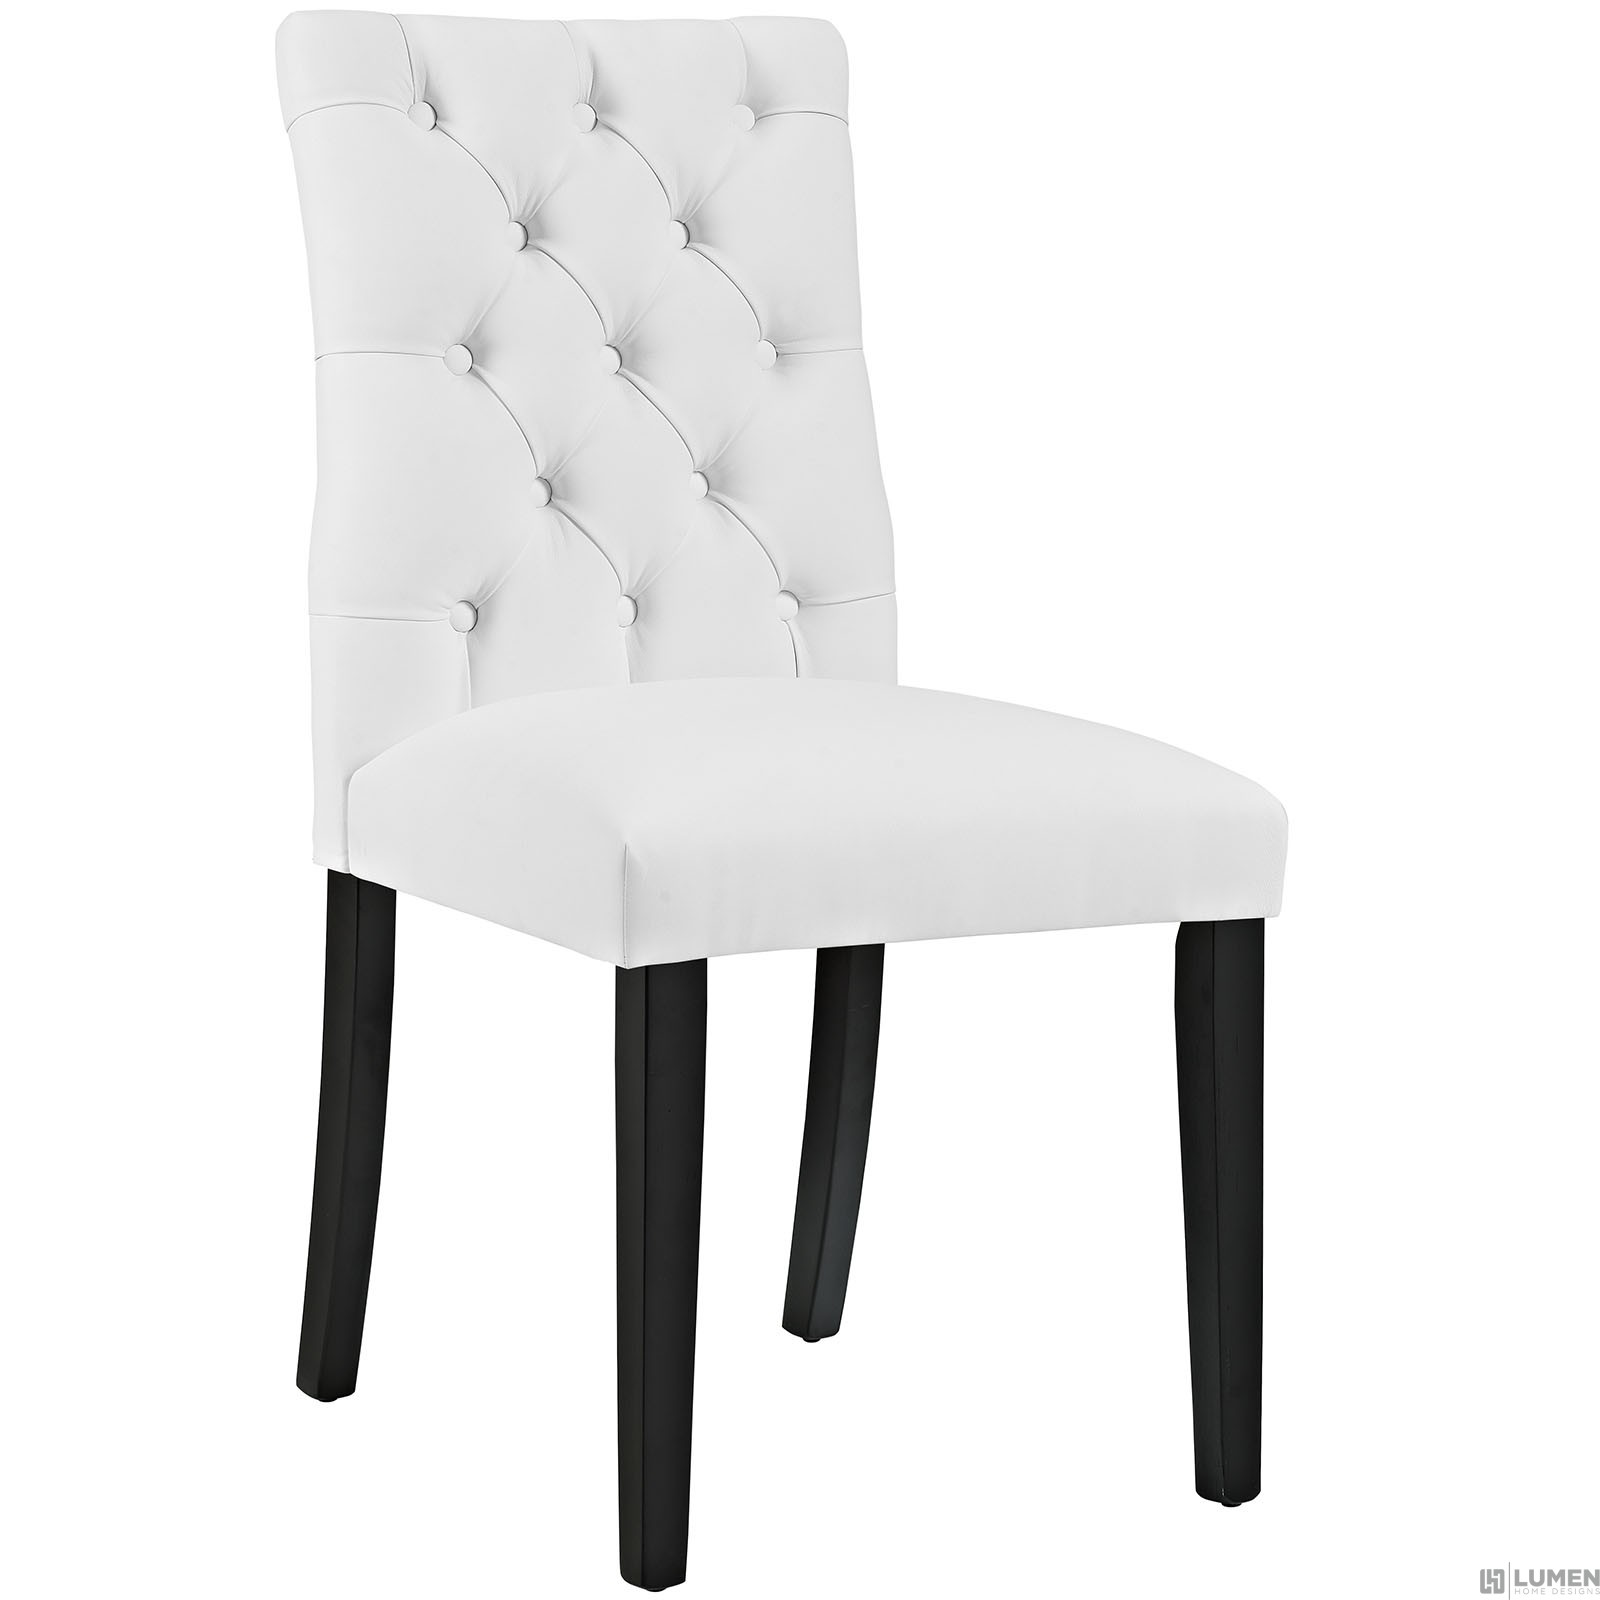 LHD-2230-WHI-Dining Chair